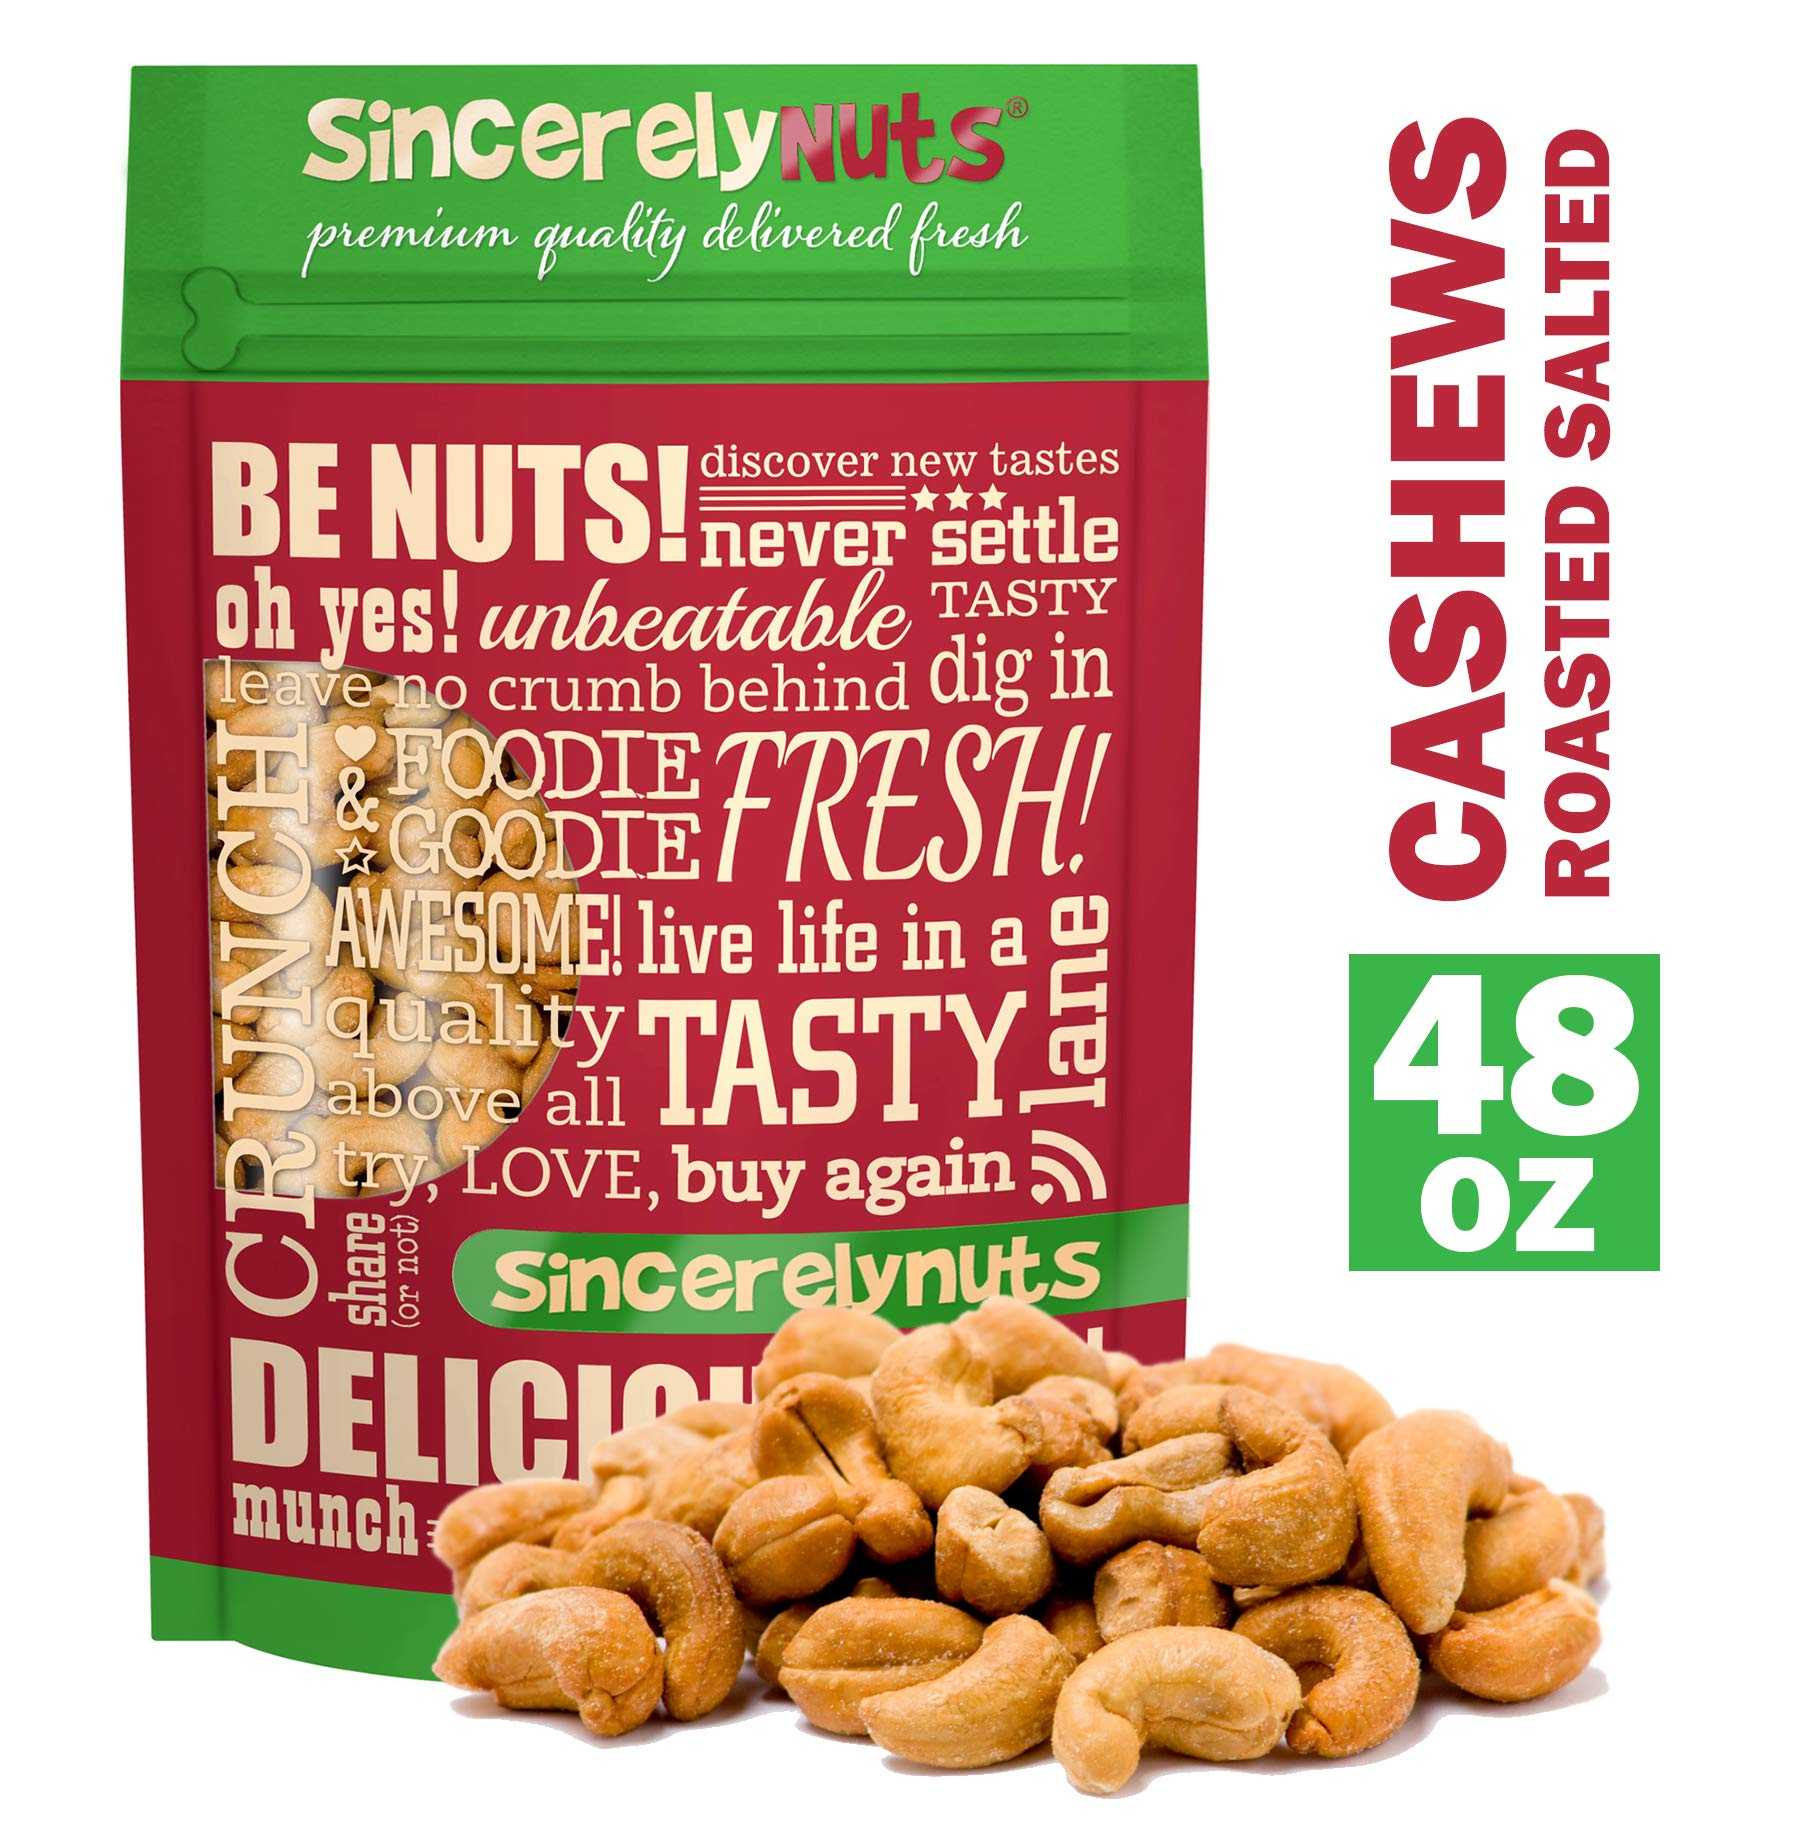 Sincerely Nuts - Whole Cashews Roasted and Salted | Three Lb. Bag | Deluxe Kosher Snack Food | Healthy Source of Protein, Vitamin & Mineral Nutritional Content | Gourmet Quality Vegan Cashew Nut by Sincerely Nuts